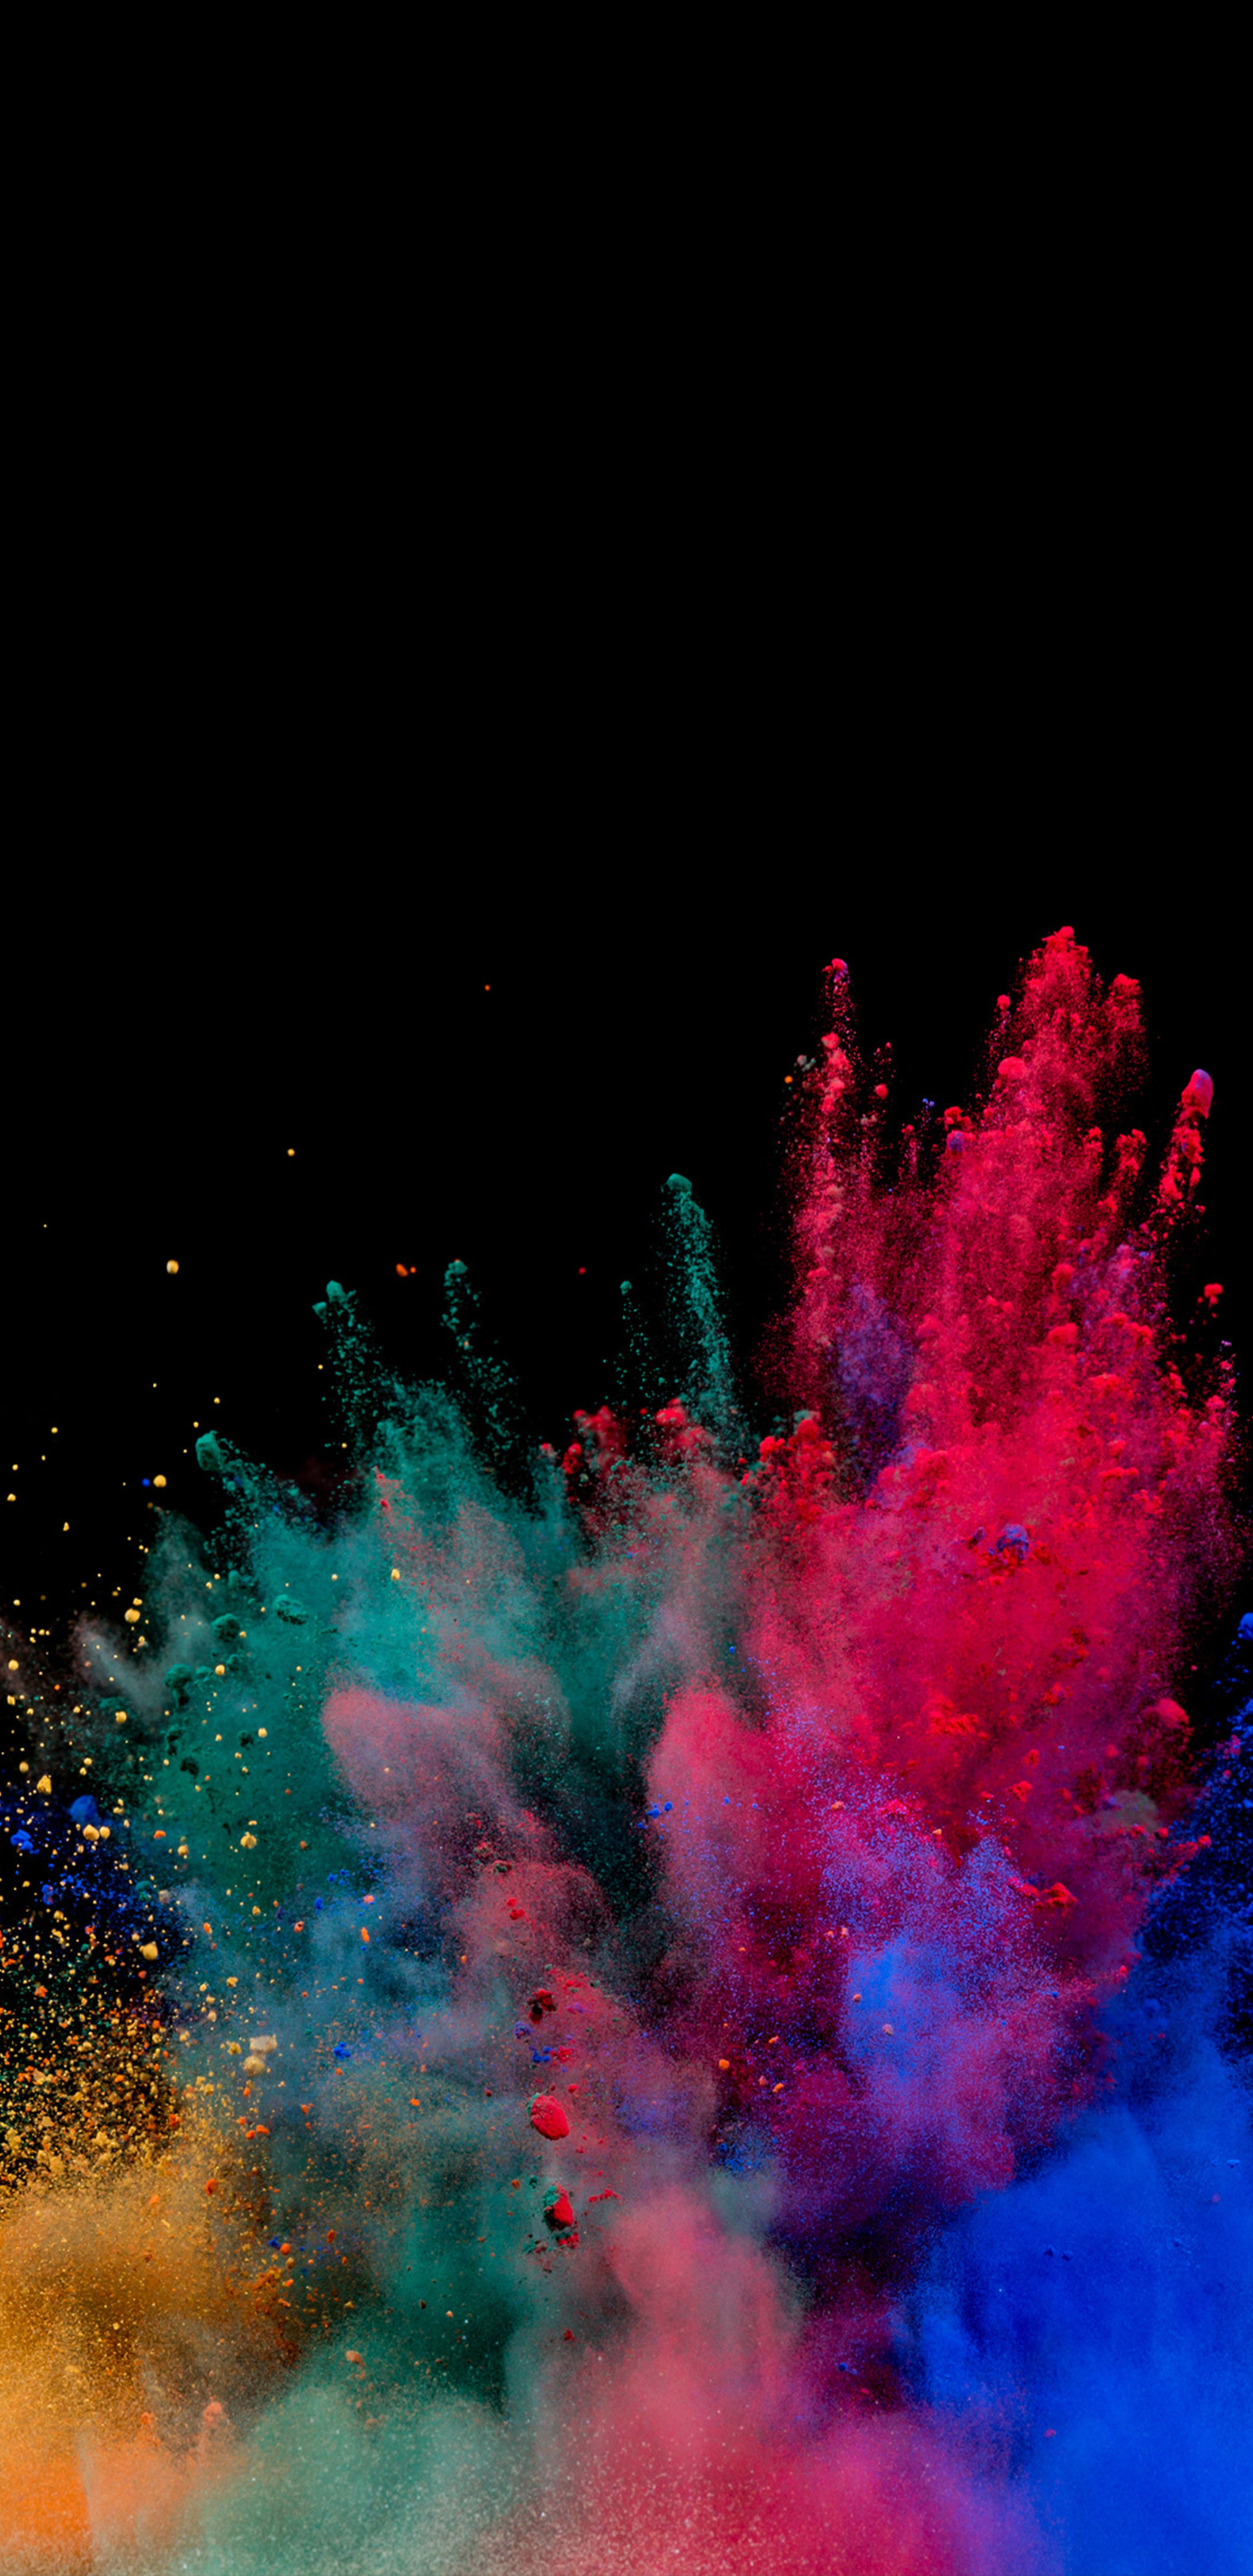 1440x2960 Colorful Powder Explosion Samsung Galaxy Note 9 8 S9 S8